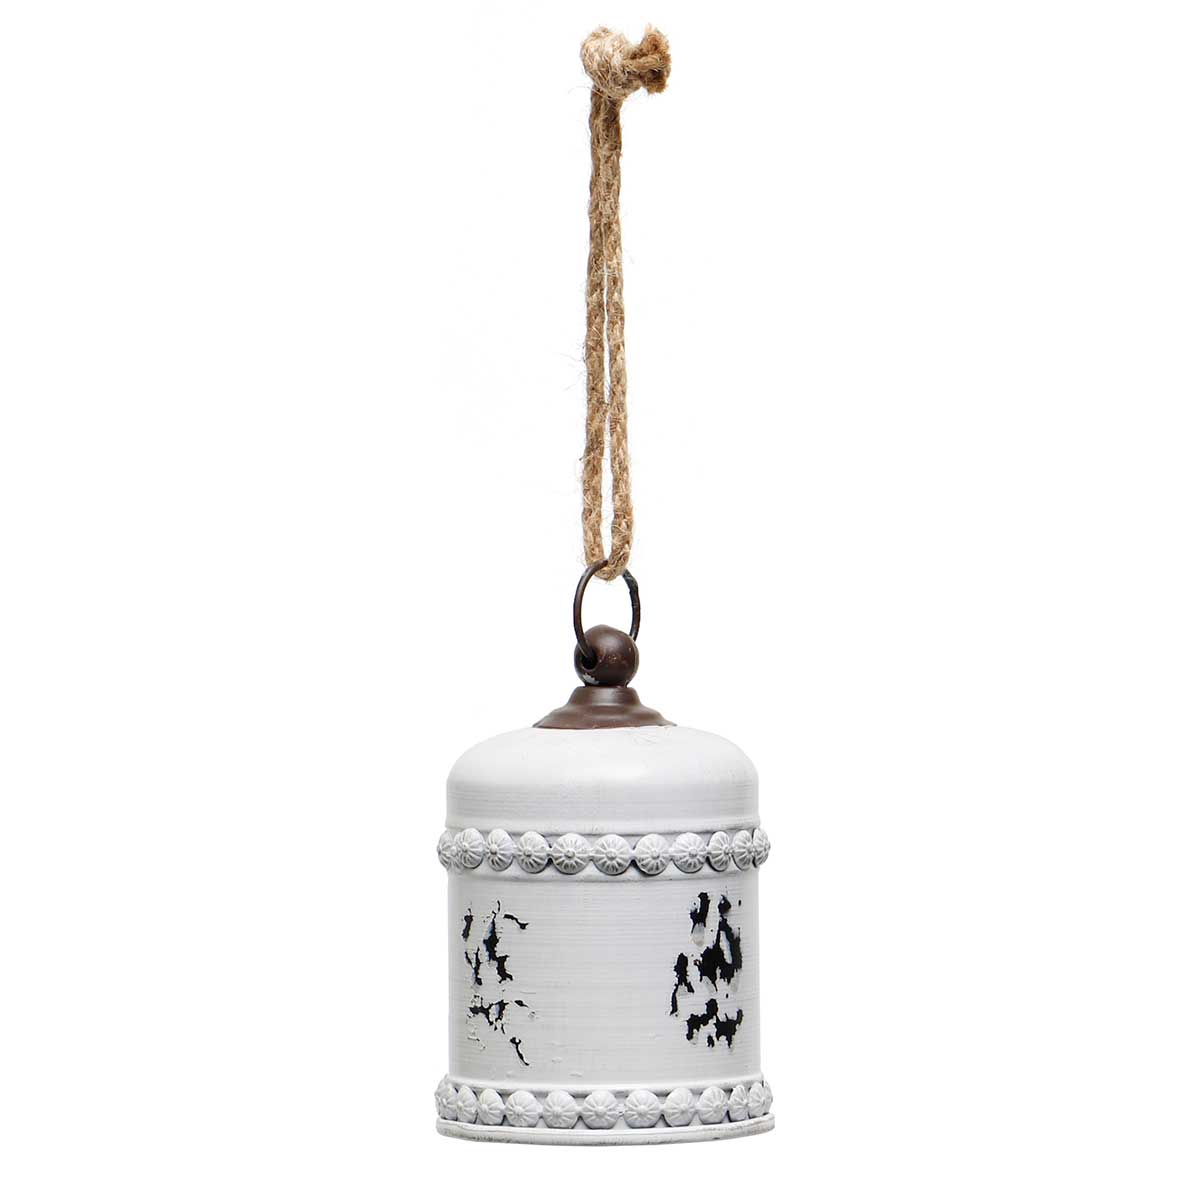 VINTAGE WHITE METAL DOME BELL